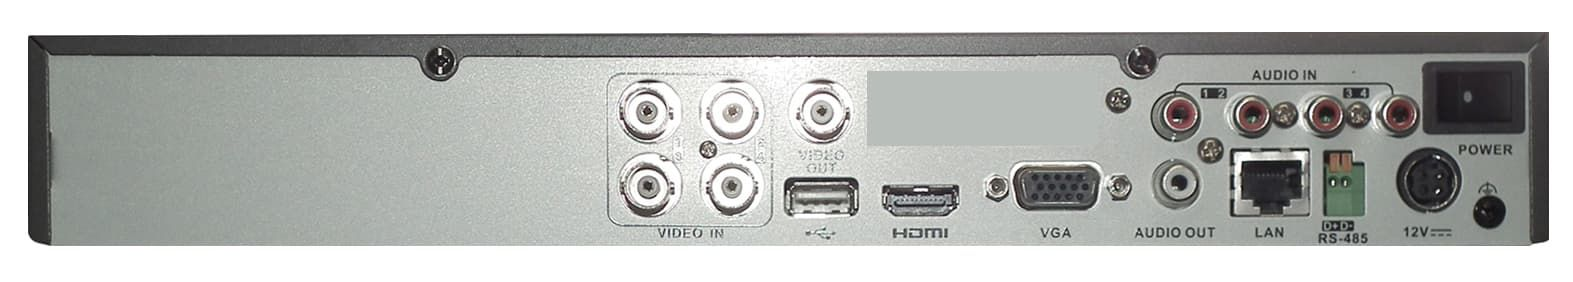 DS-7204HQHI-K1-P-4audio.jpg